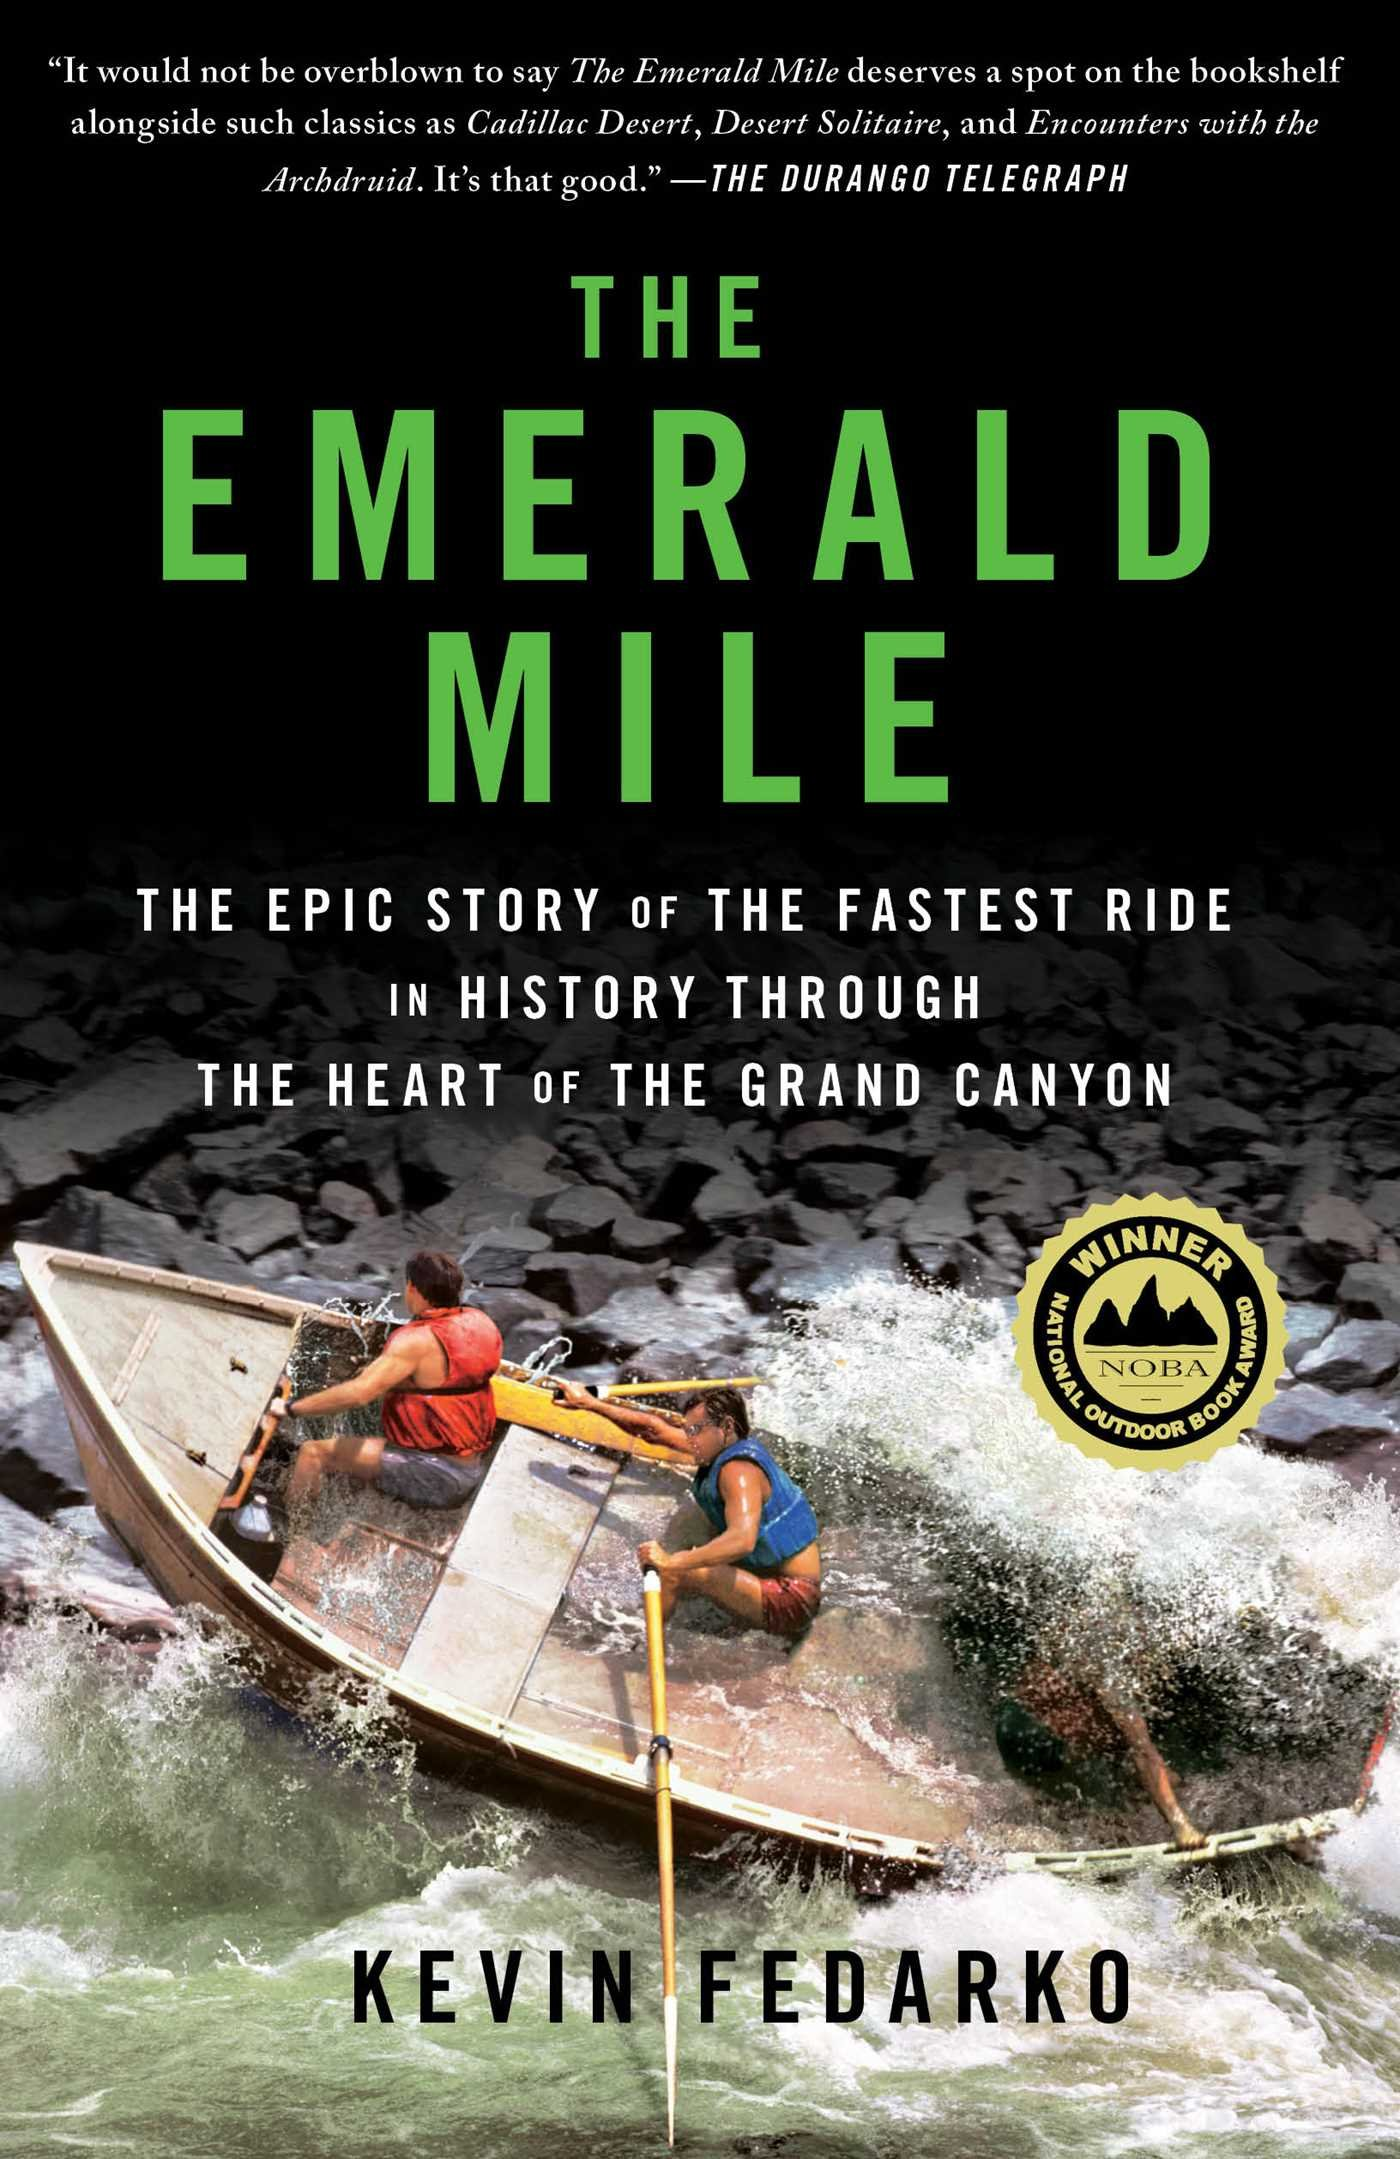 Emerald Mile Fastest History Through product image